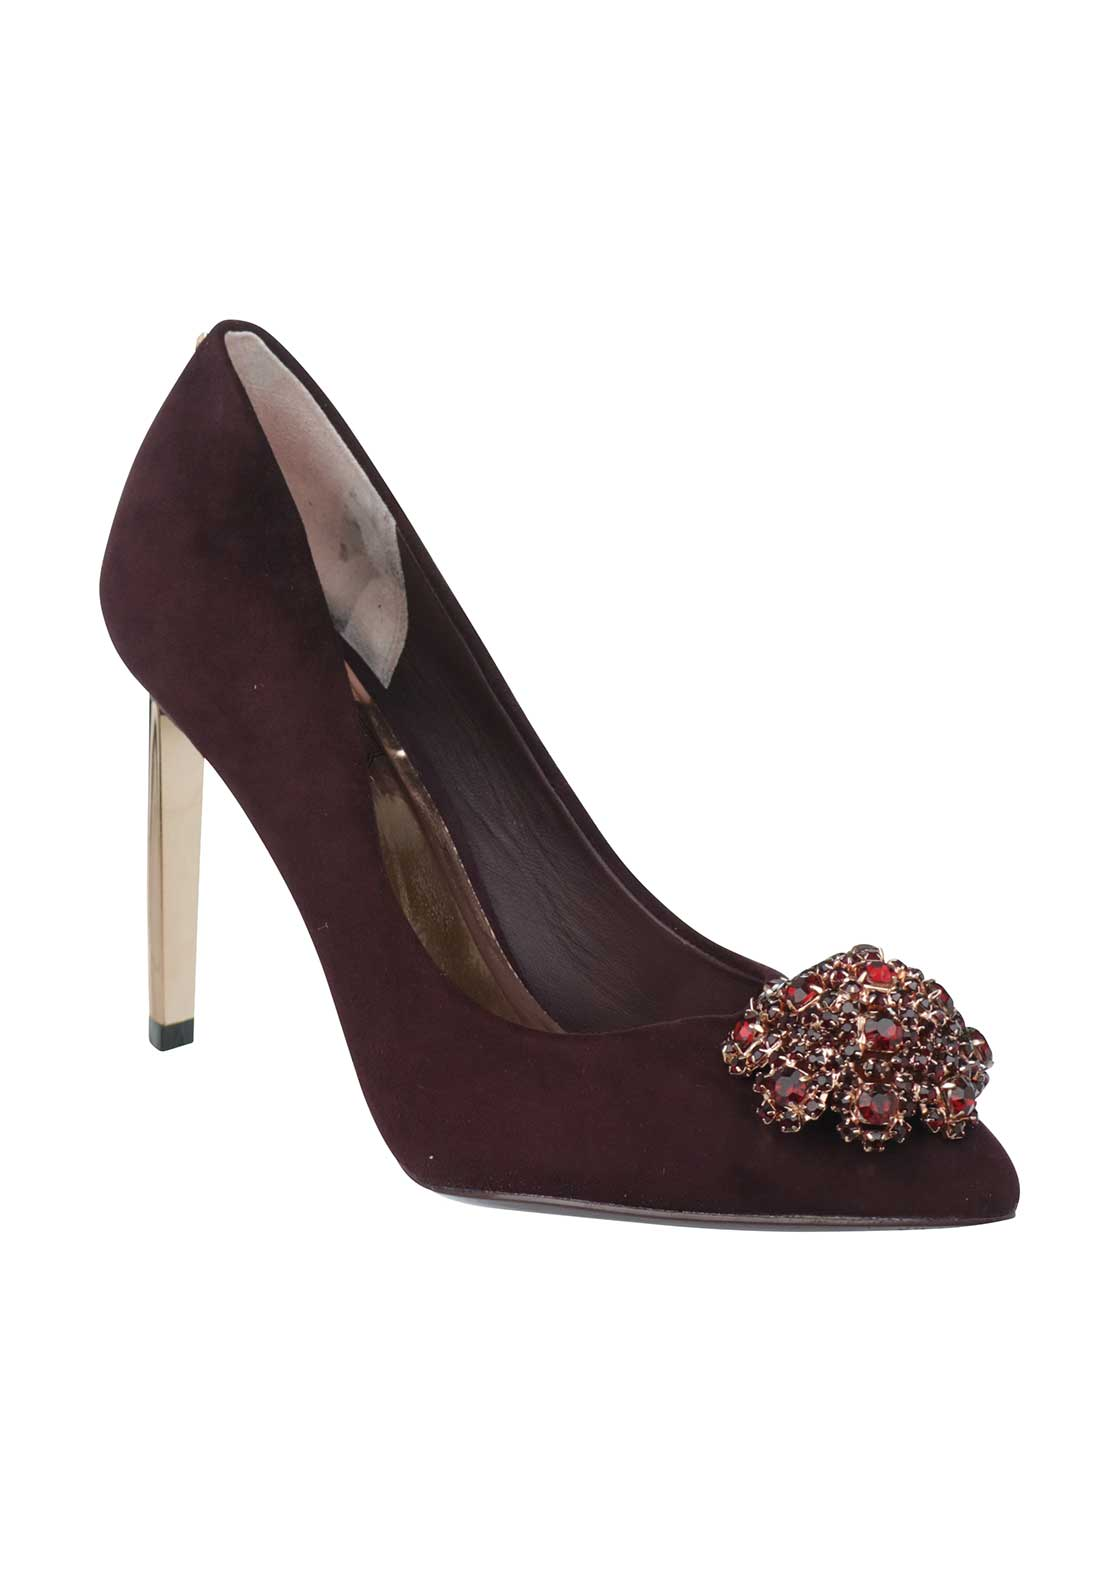 Ted Baker Womens Peetch Suede Heeled Shoes, Burgundy